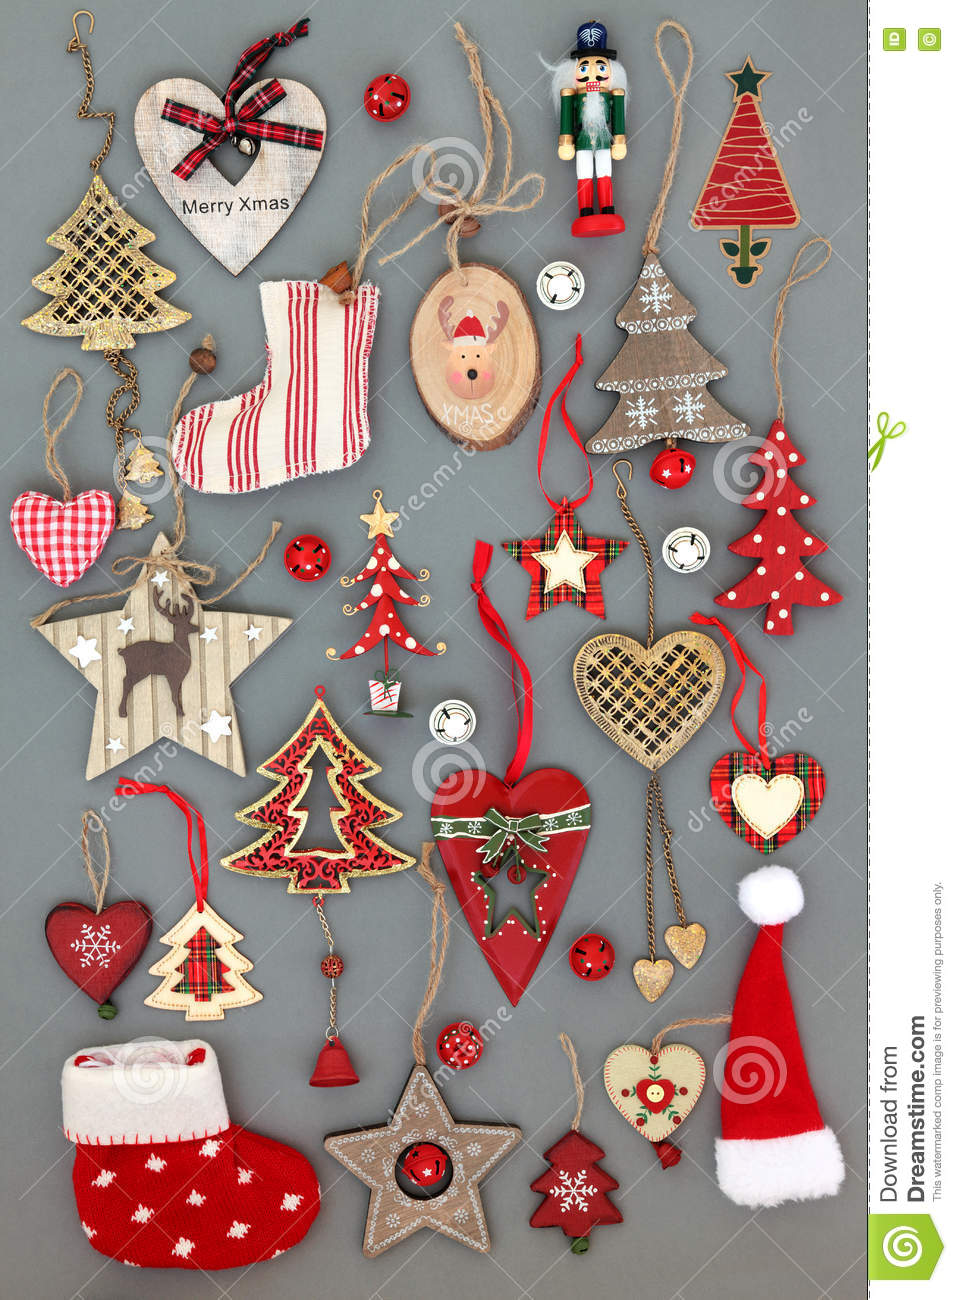 Christmas Tree Decorations stock photo. Image of fashioned - 75499362